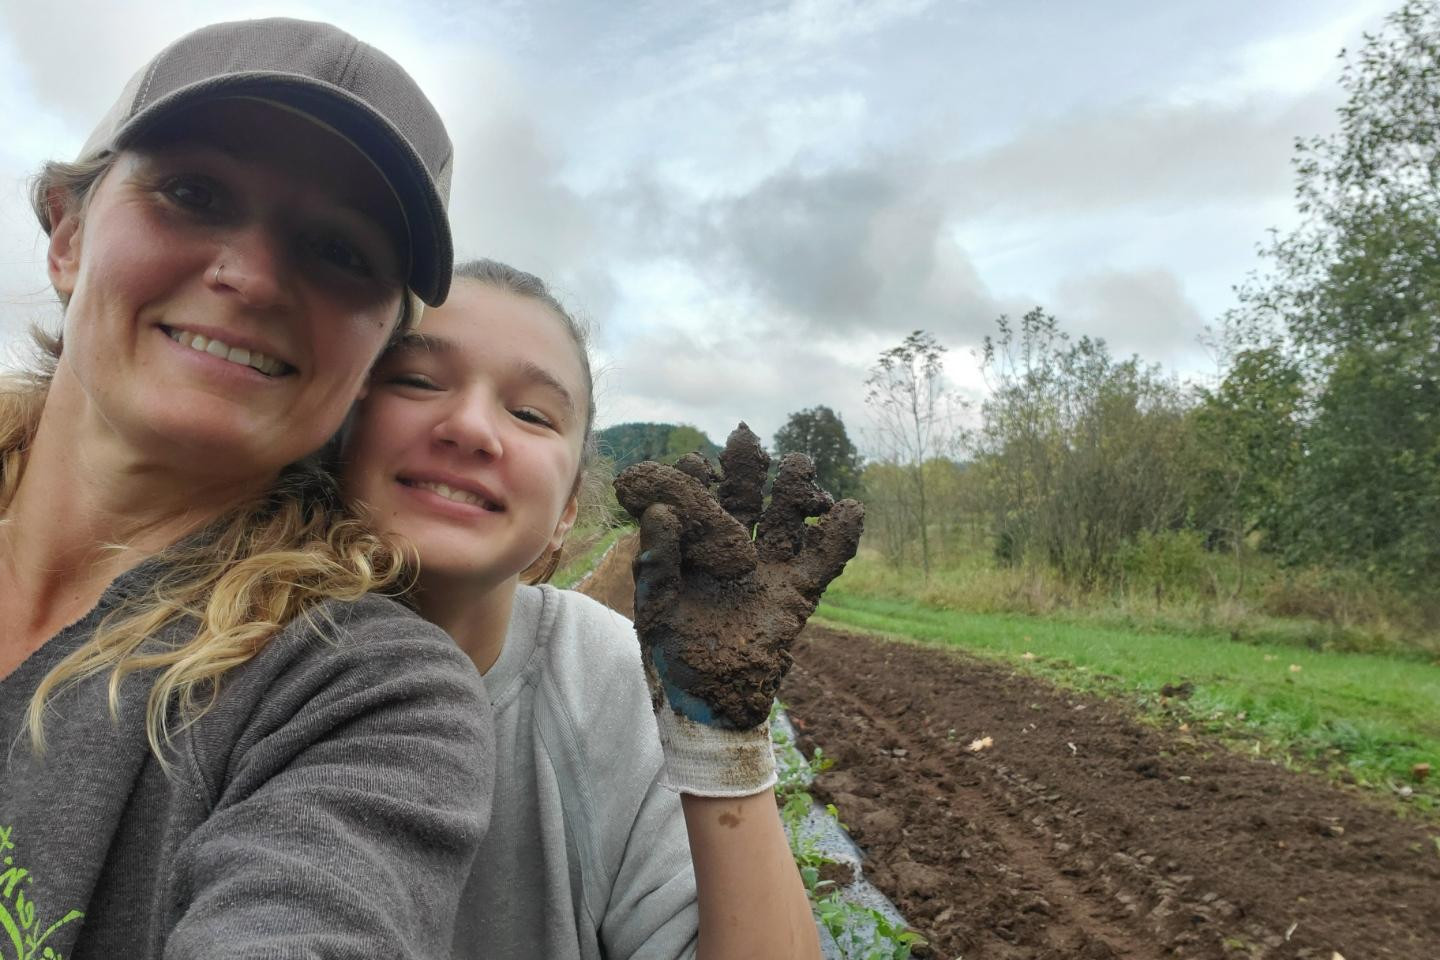 Planting in the rain makes for muddy hands